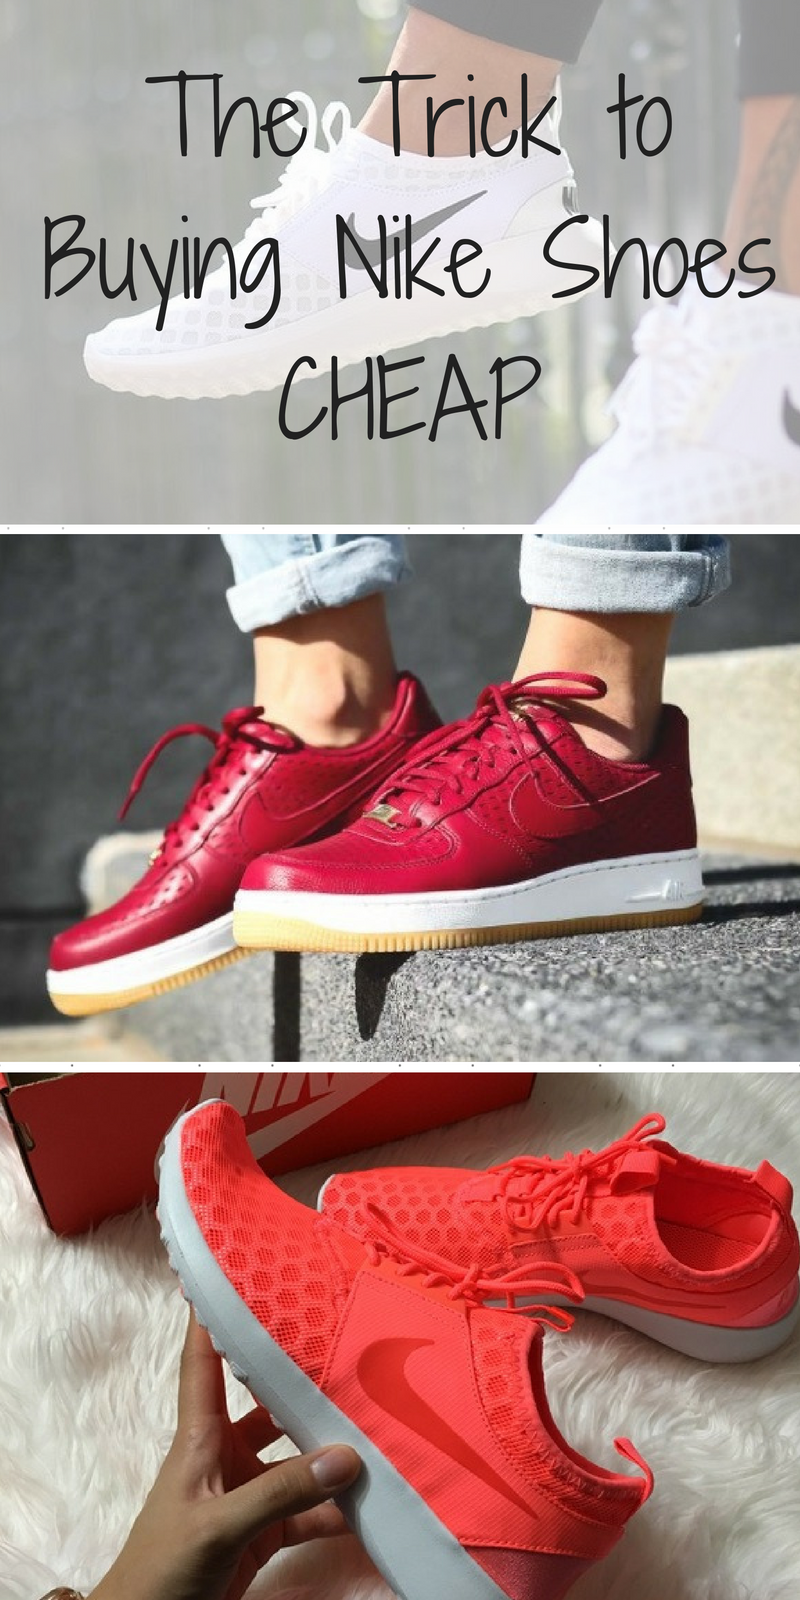 e63d40450f199 Nike Sale Happening Now! Shop Poshmark for the best deals on Nike shoes.  Find